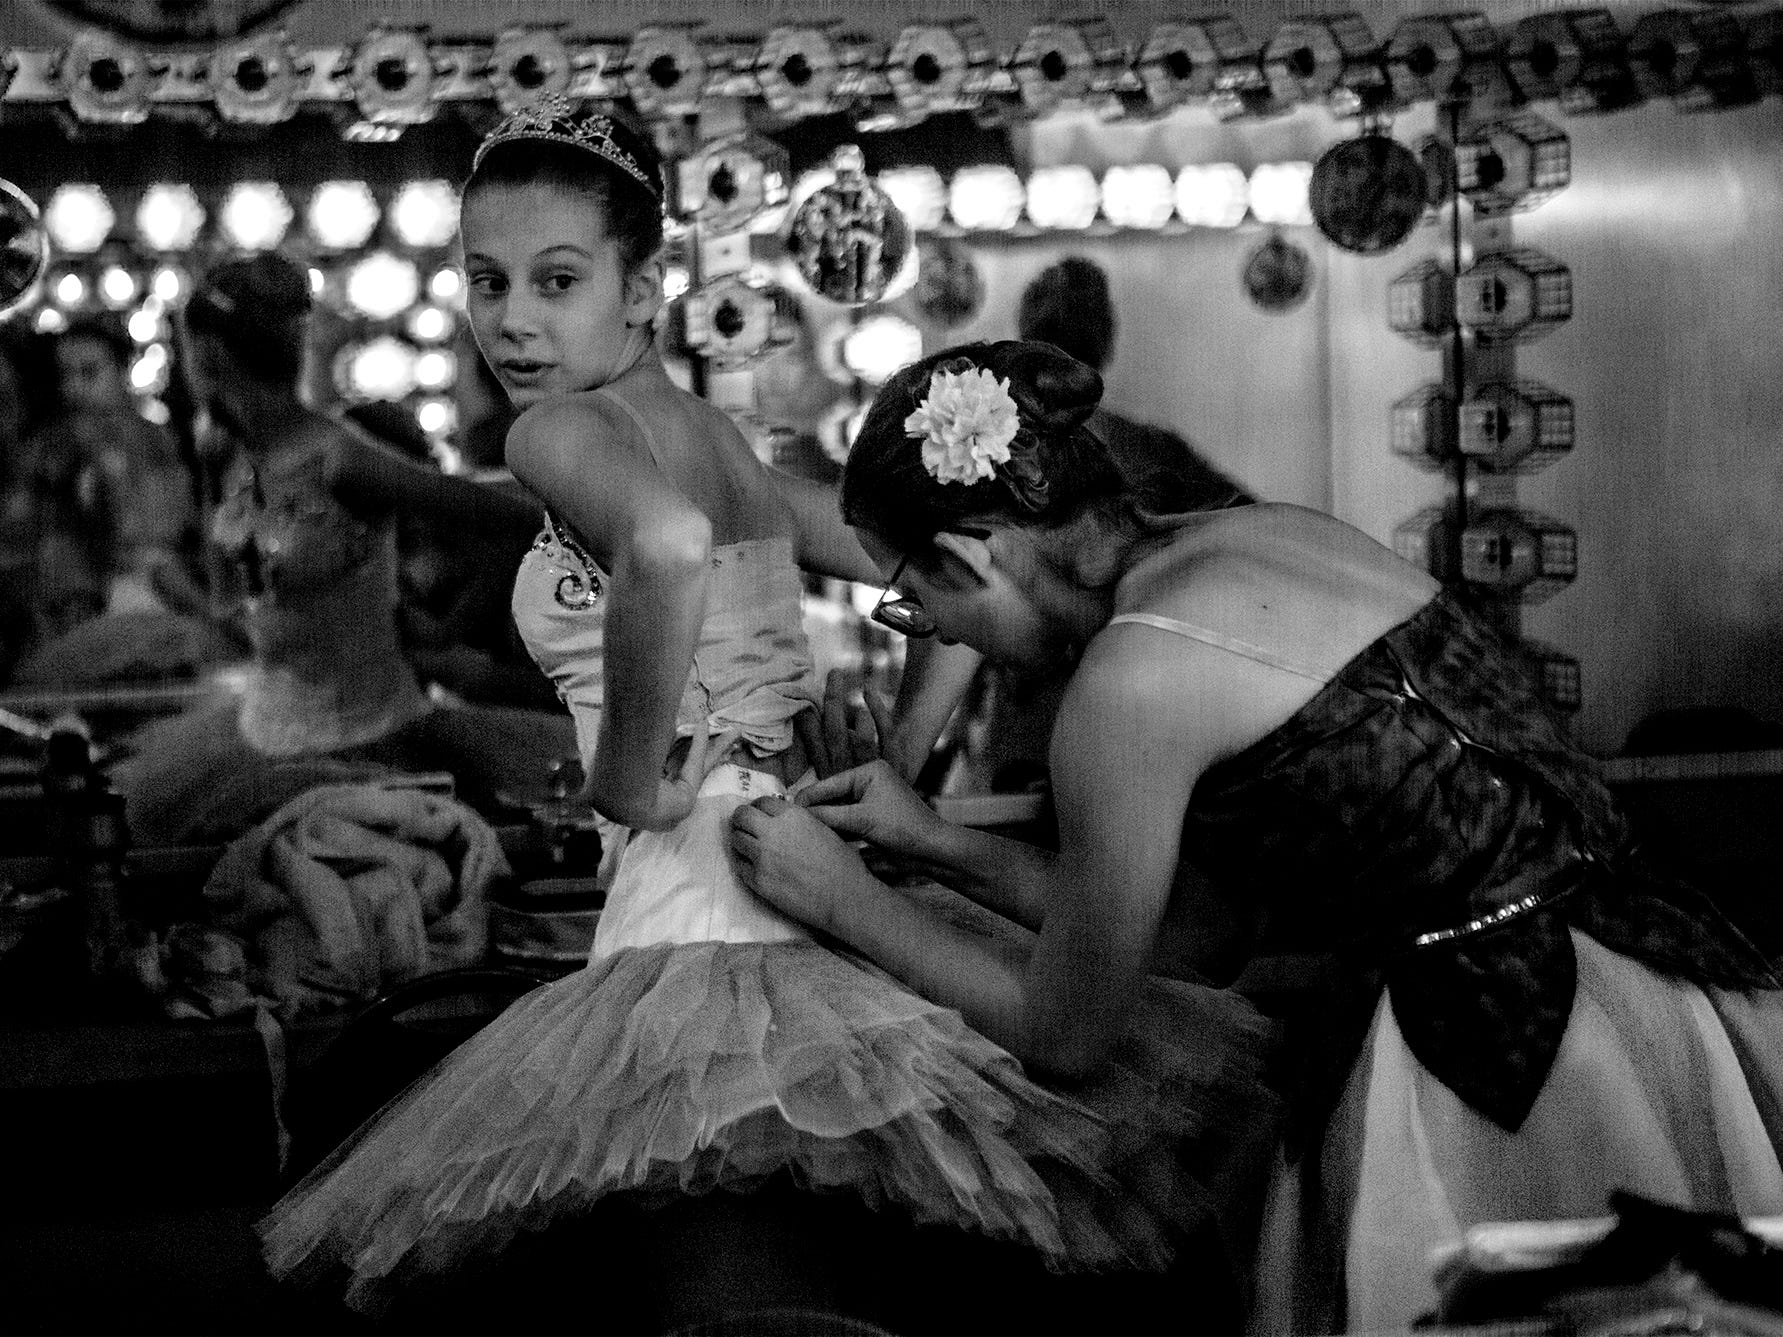 Backstage at the Midland theater during a dress rehearsal of the Central Ohio Youth Ballet's production of the Nutcracker. The show runs Thanksgiving Weekend at the Midland theater. Tickets are still available.